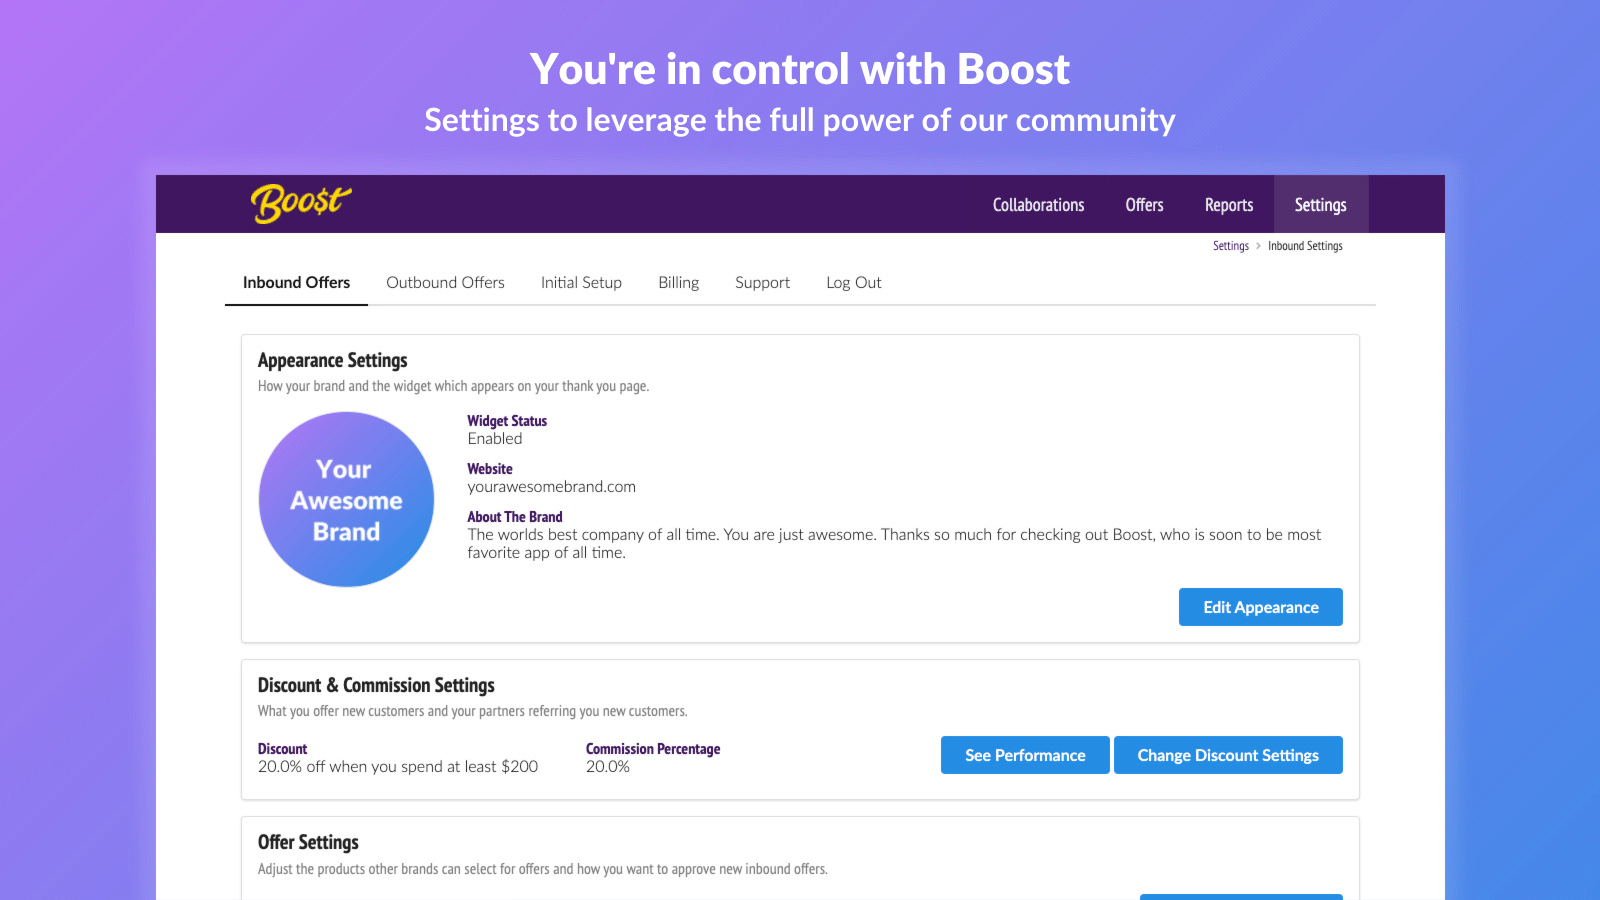 You're in control with Boost